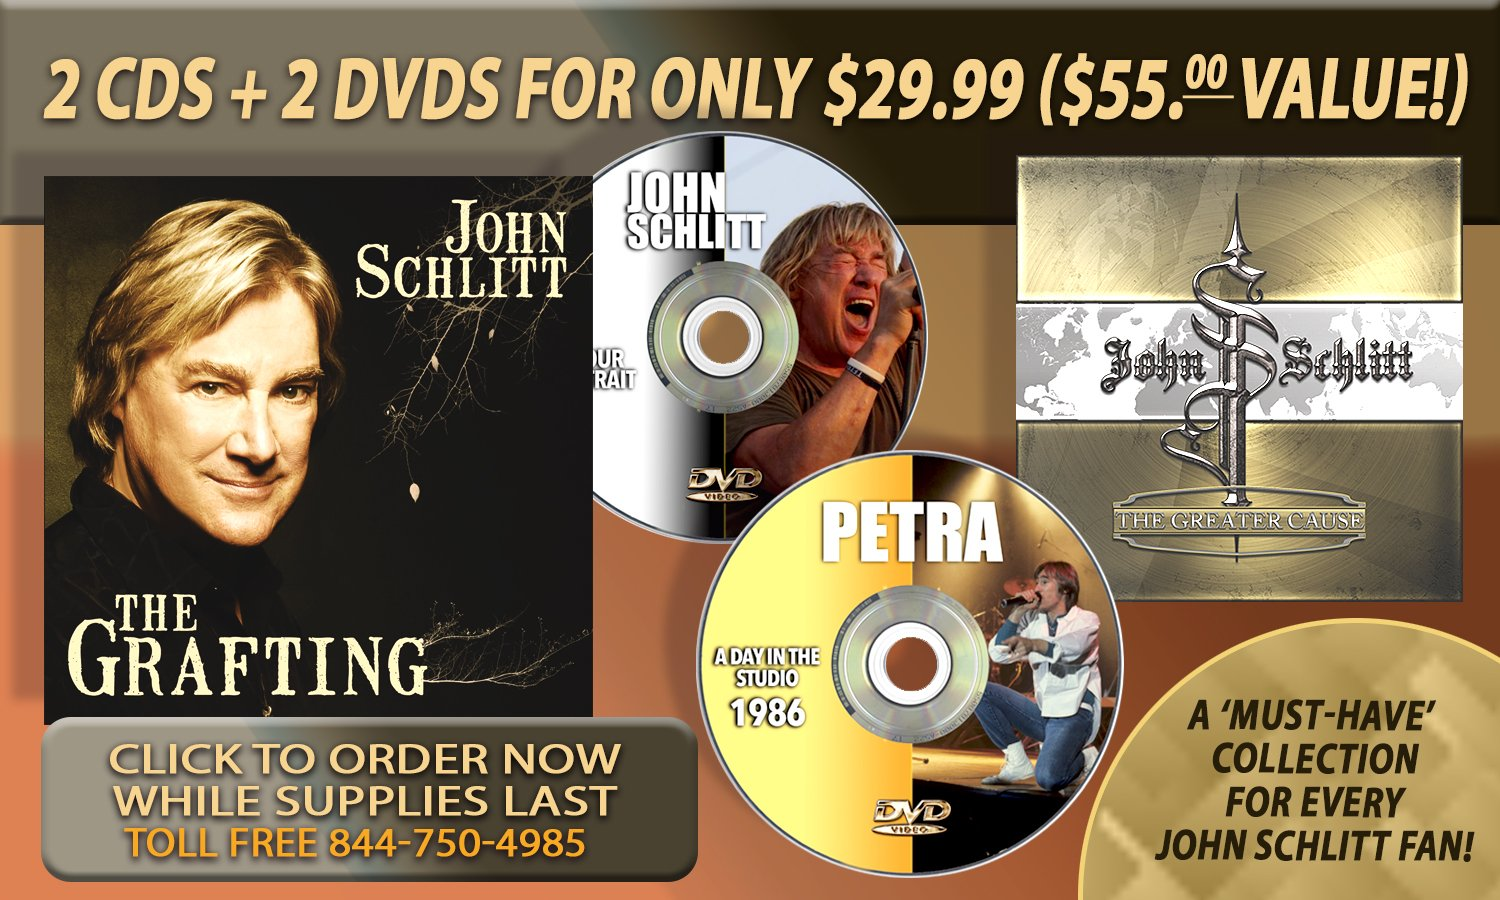 SKYWATCH EXCLUSIVE! THE JOHN SCHLITT PROGRAM SPECIAL!